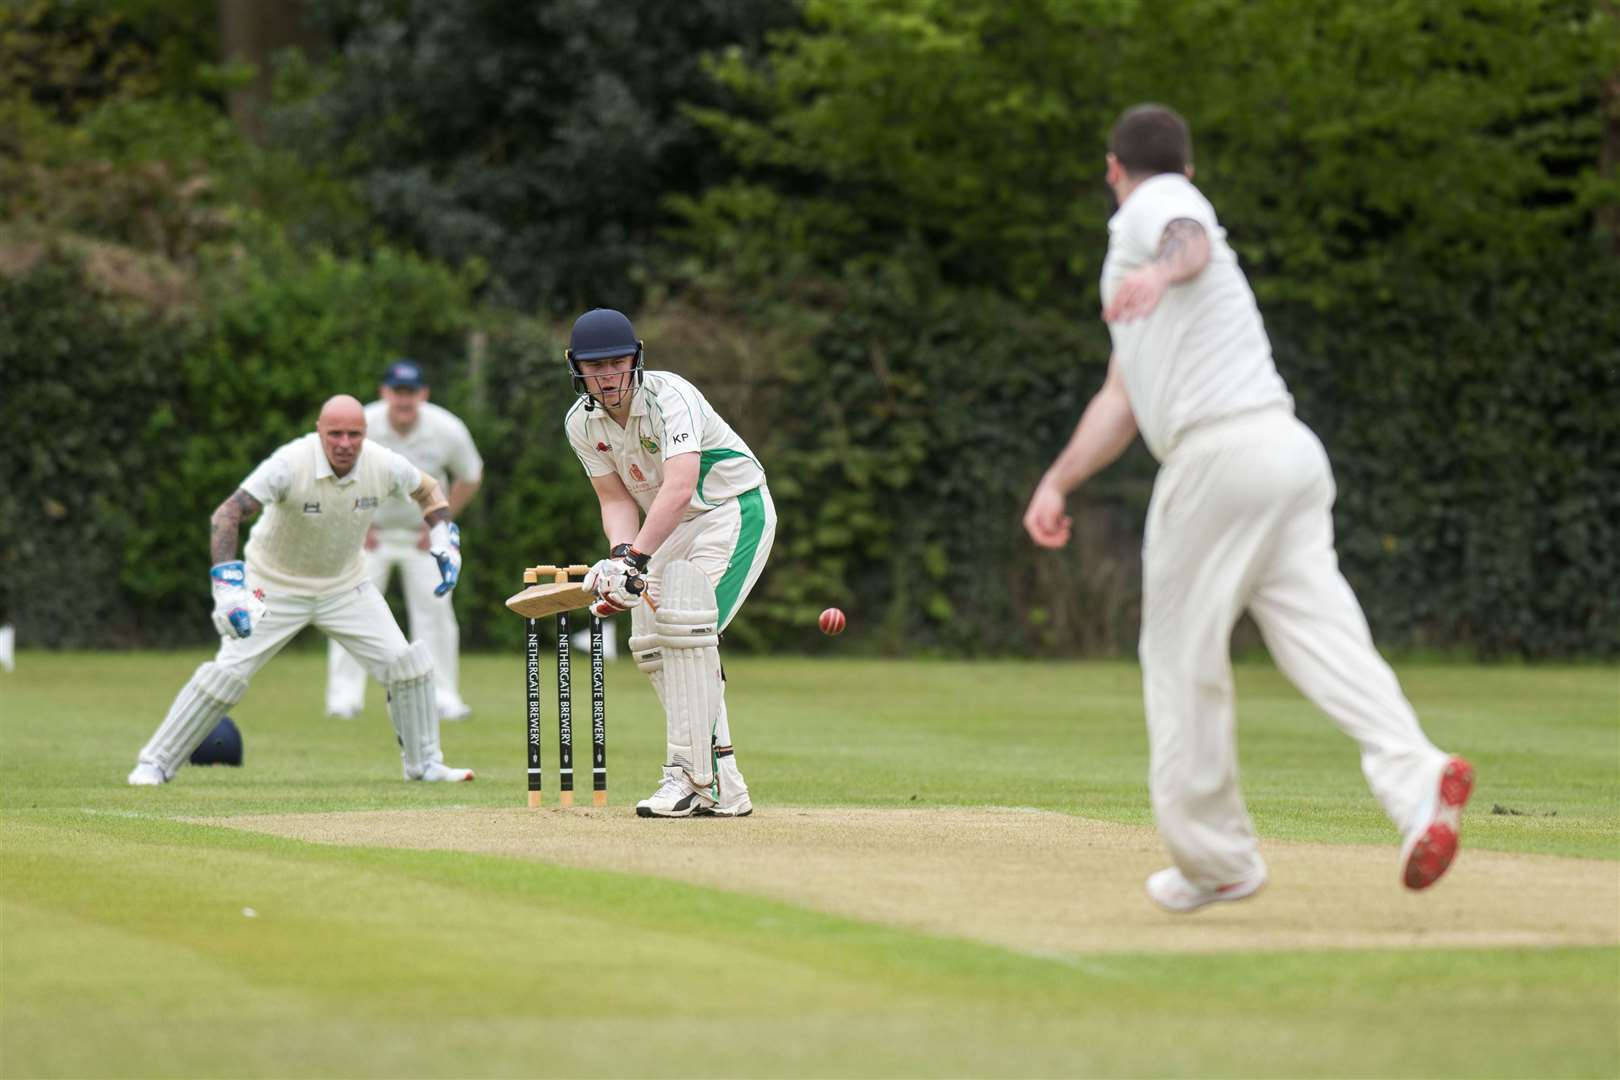 Long Melford Cricket Club is hosting the Help for Heroes cricket teams, which are comprised of former military personnel, for two exhibition games, in order to raise money for the charity. Kieran Pettitt LM Picture by Mark Westley. (9755253)